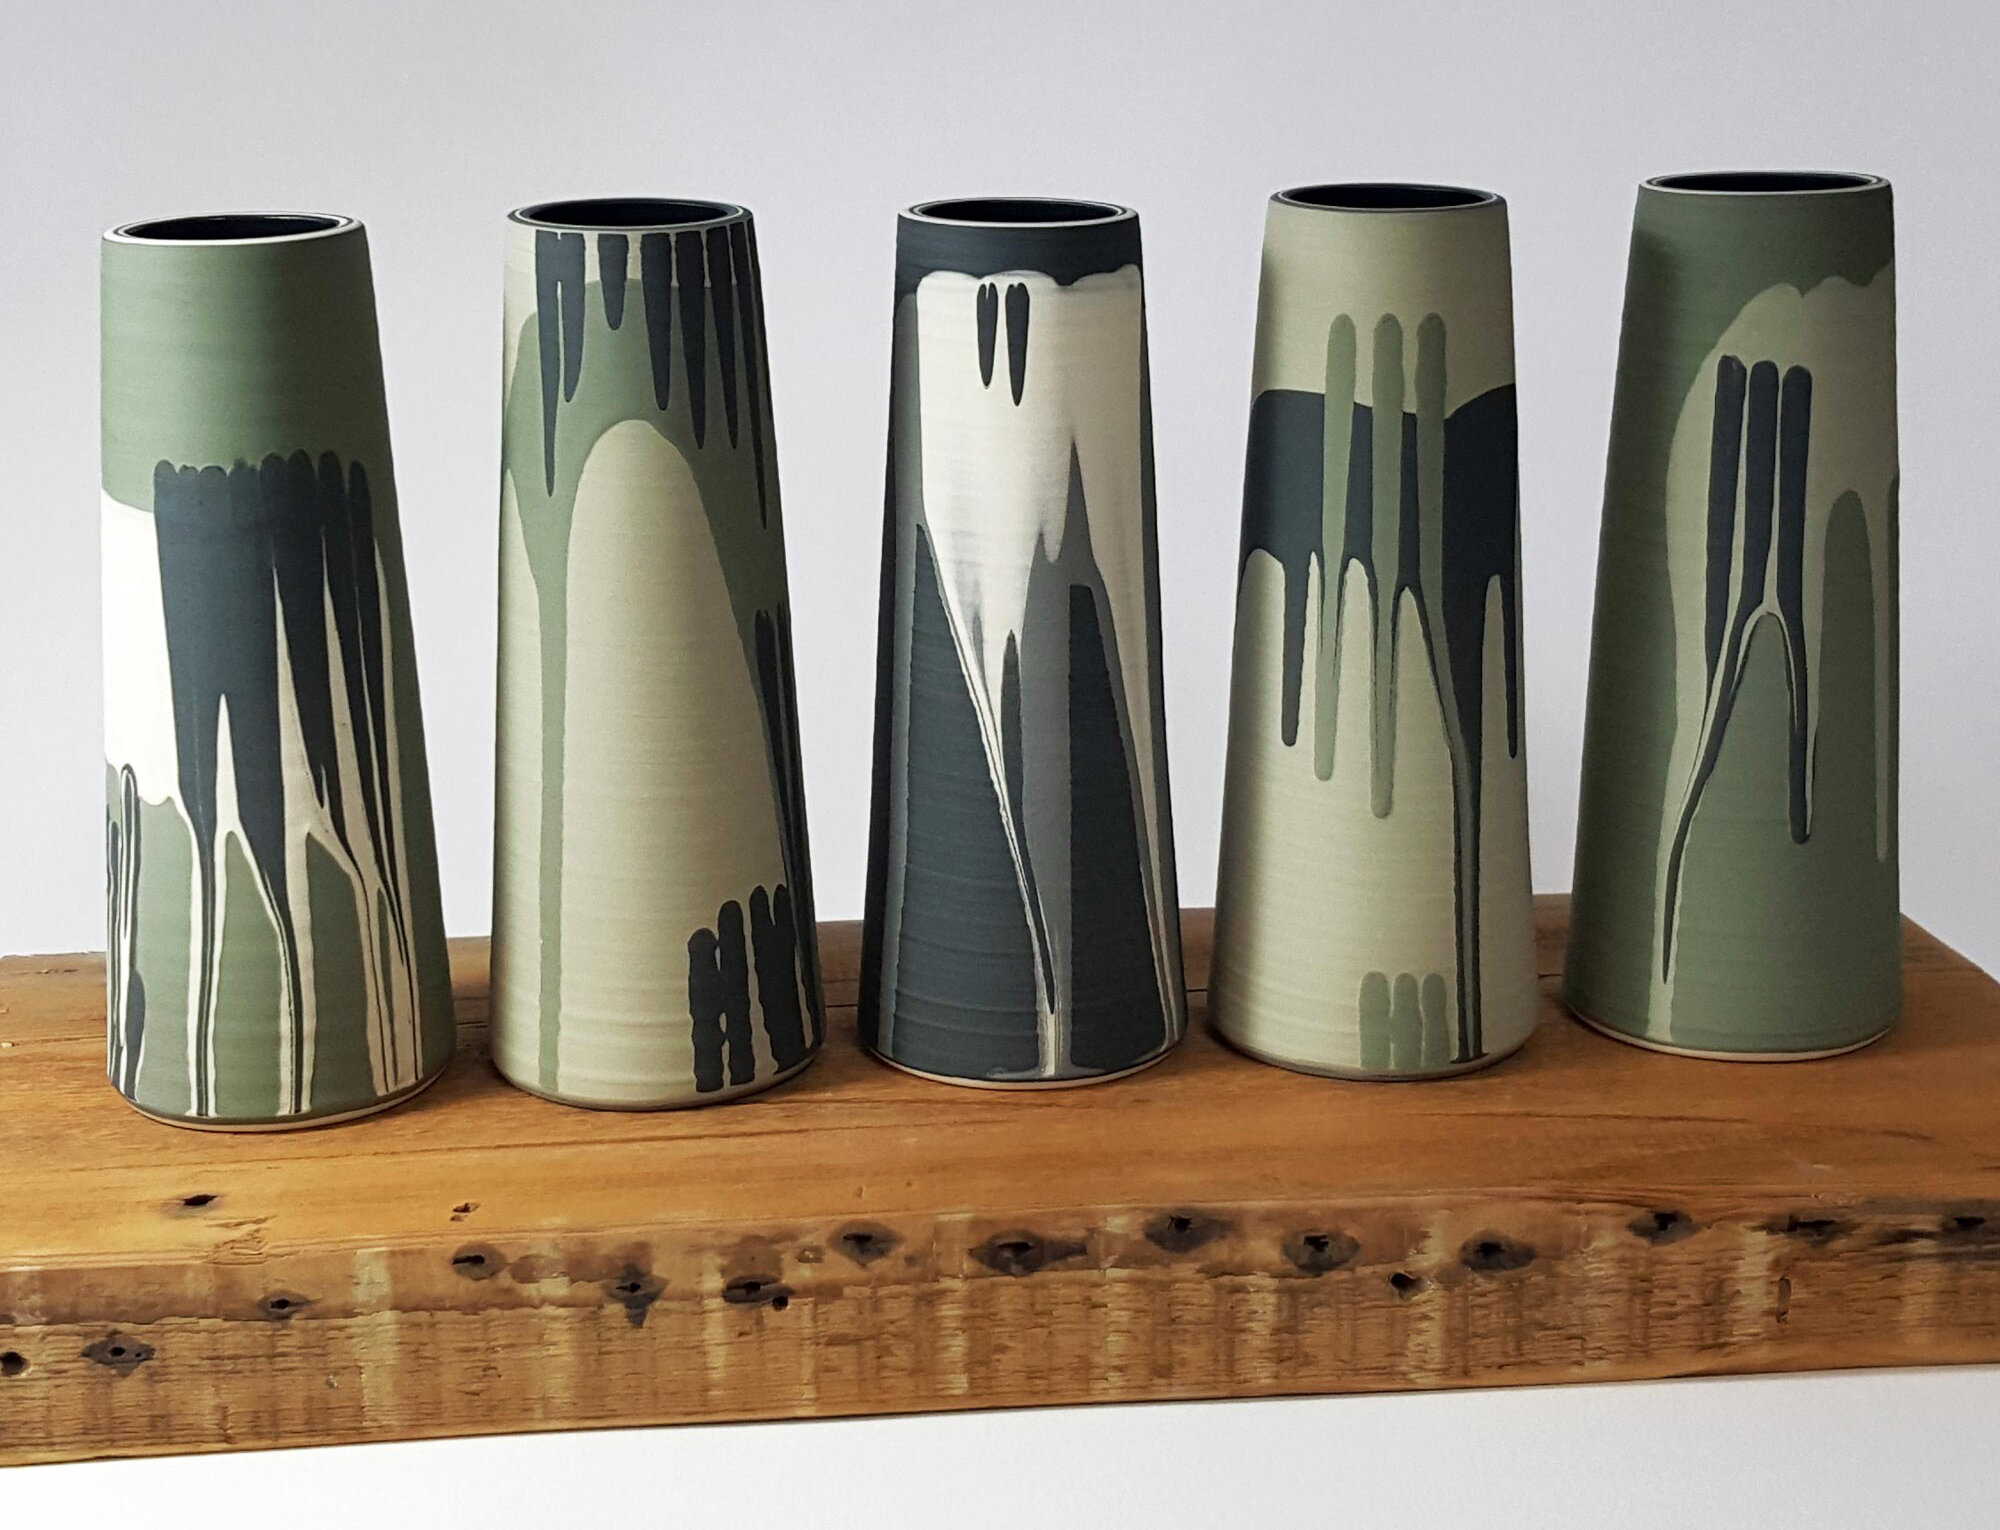 """New Collection of """"Woodland Wonders"""" Ceramics on Show in Norfolk at:   Riverside Art & Glass  Open Monday to Saturday 9.30am – 5.30pm , Sunday 11am – 4pm. 24 Norwich Road, Wroxham, Norfolk NR12 8RX  www.riversideartandglass.co.uk    Gallery in the Lanes  Open Monday to Saturday 9.30am – 5.30pm , Sunday 11am – 4pm. 25 Bedford Street, Norwich, Norfolk NR2 1AG  www.galleryinthelanes.co.uk"""